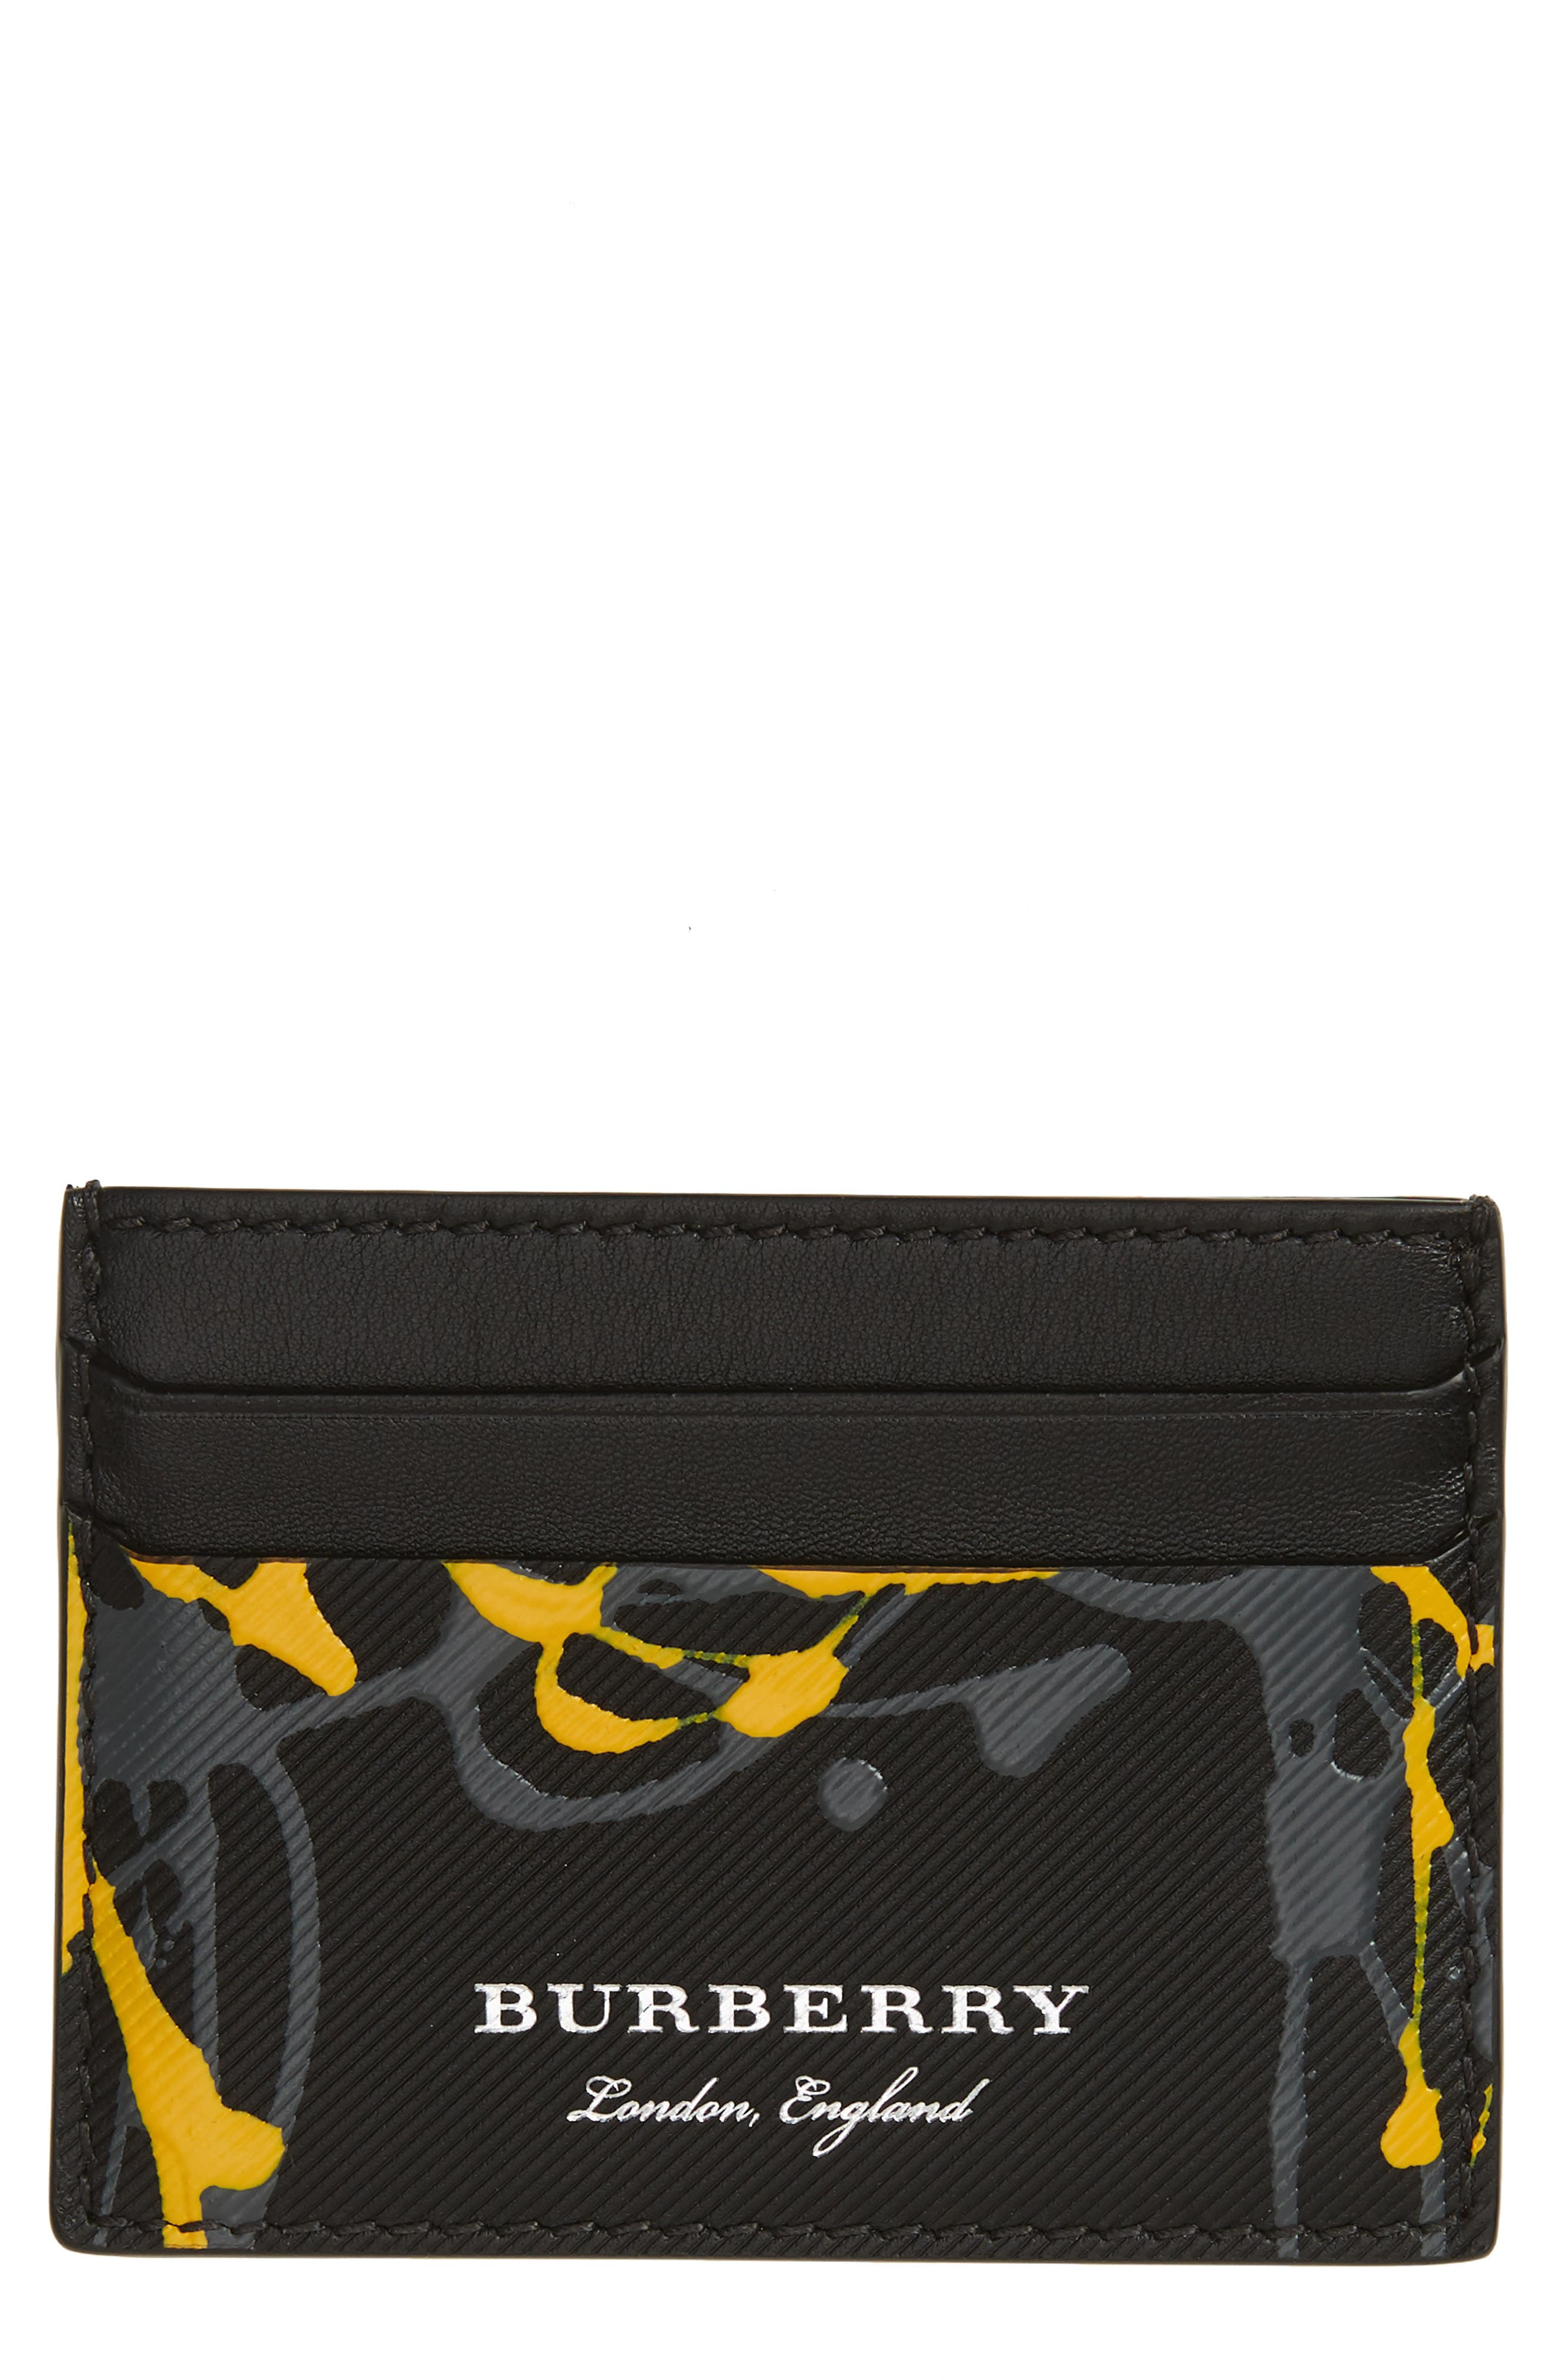 BURBERRY Trench Splash Leather Card Case, Main, color, 001